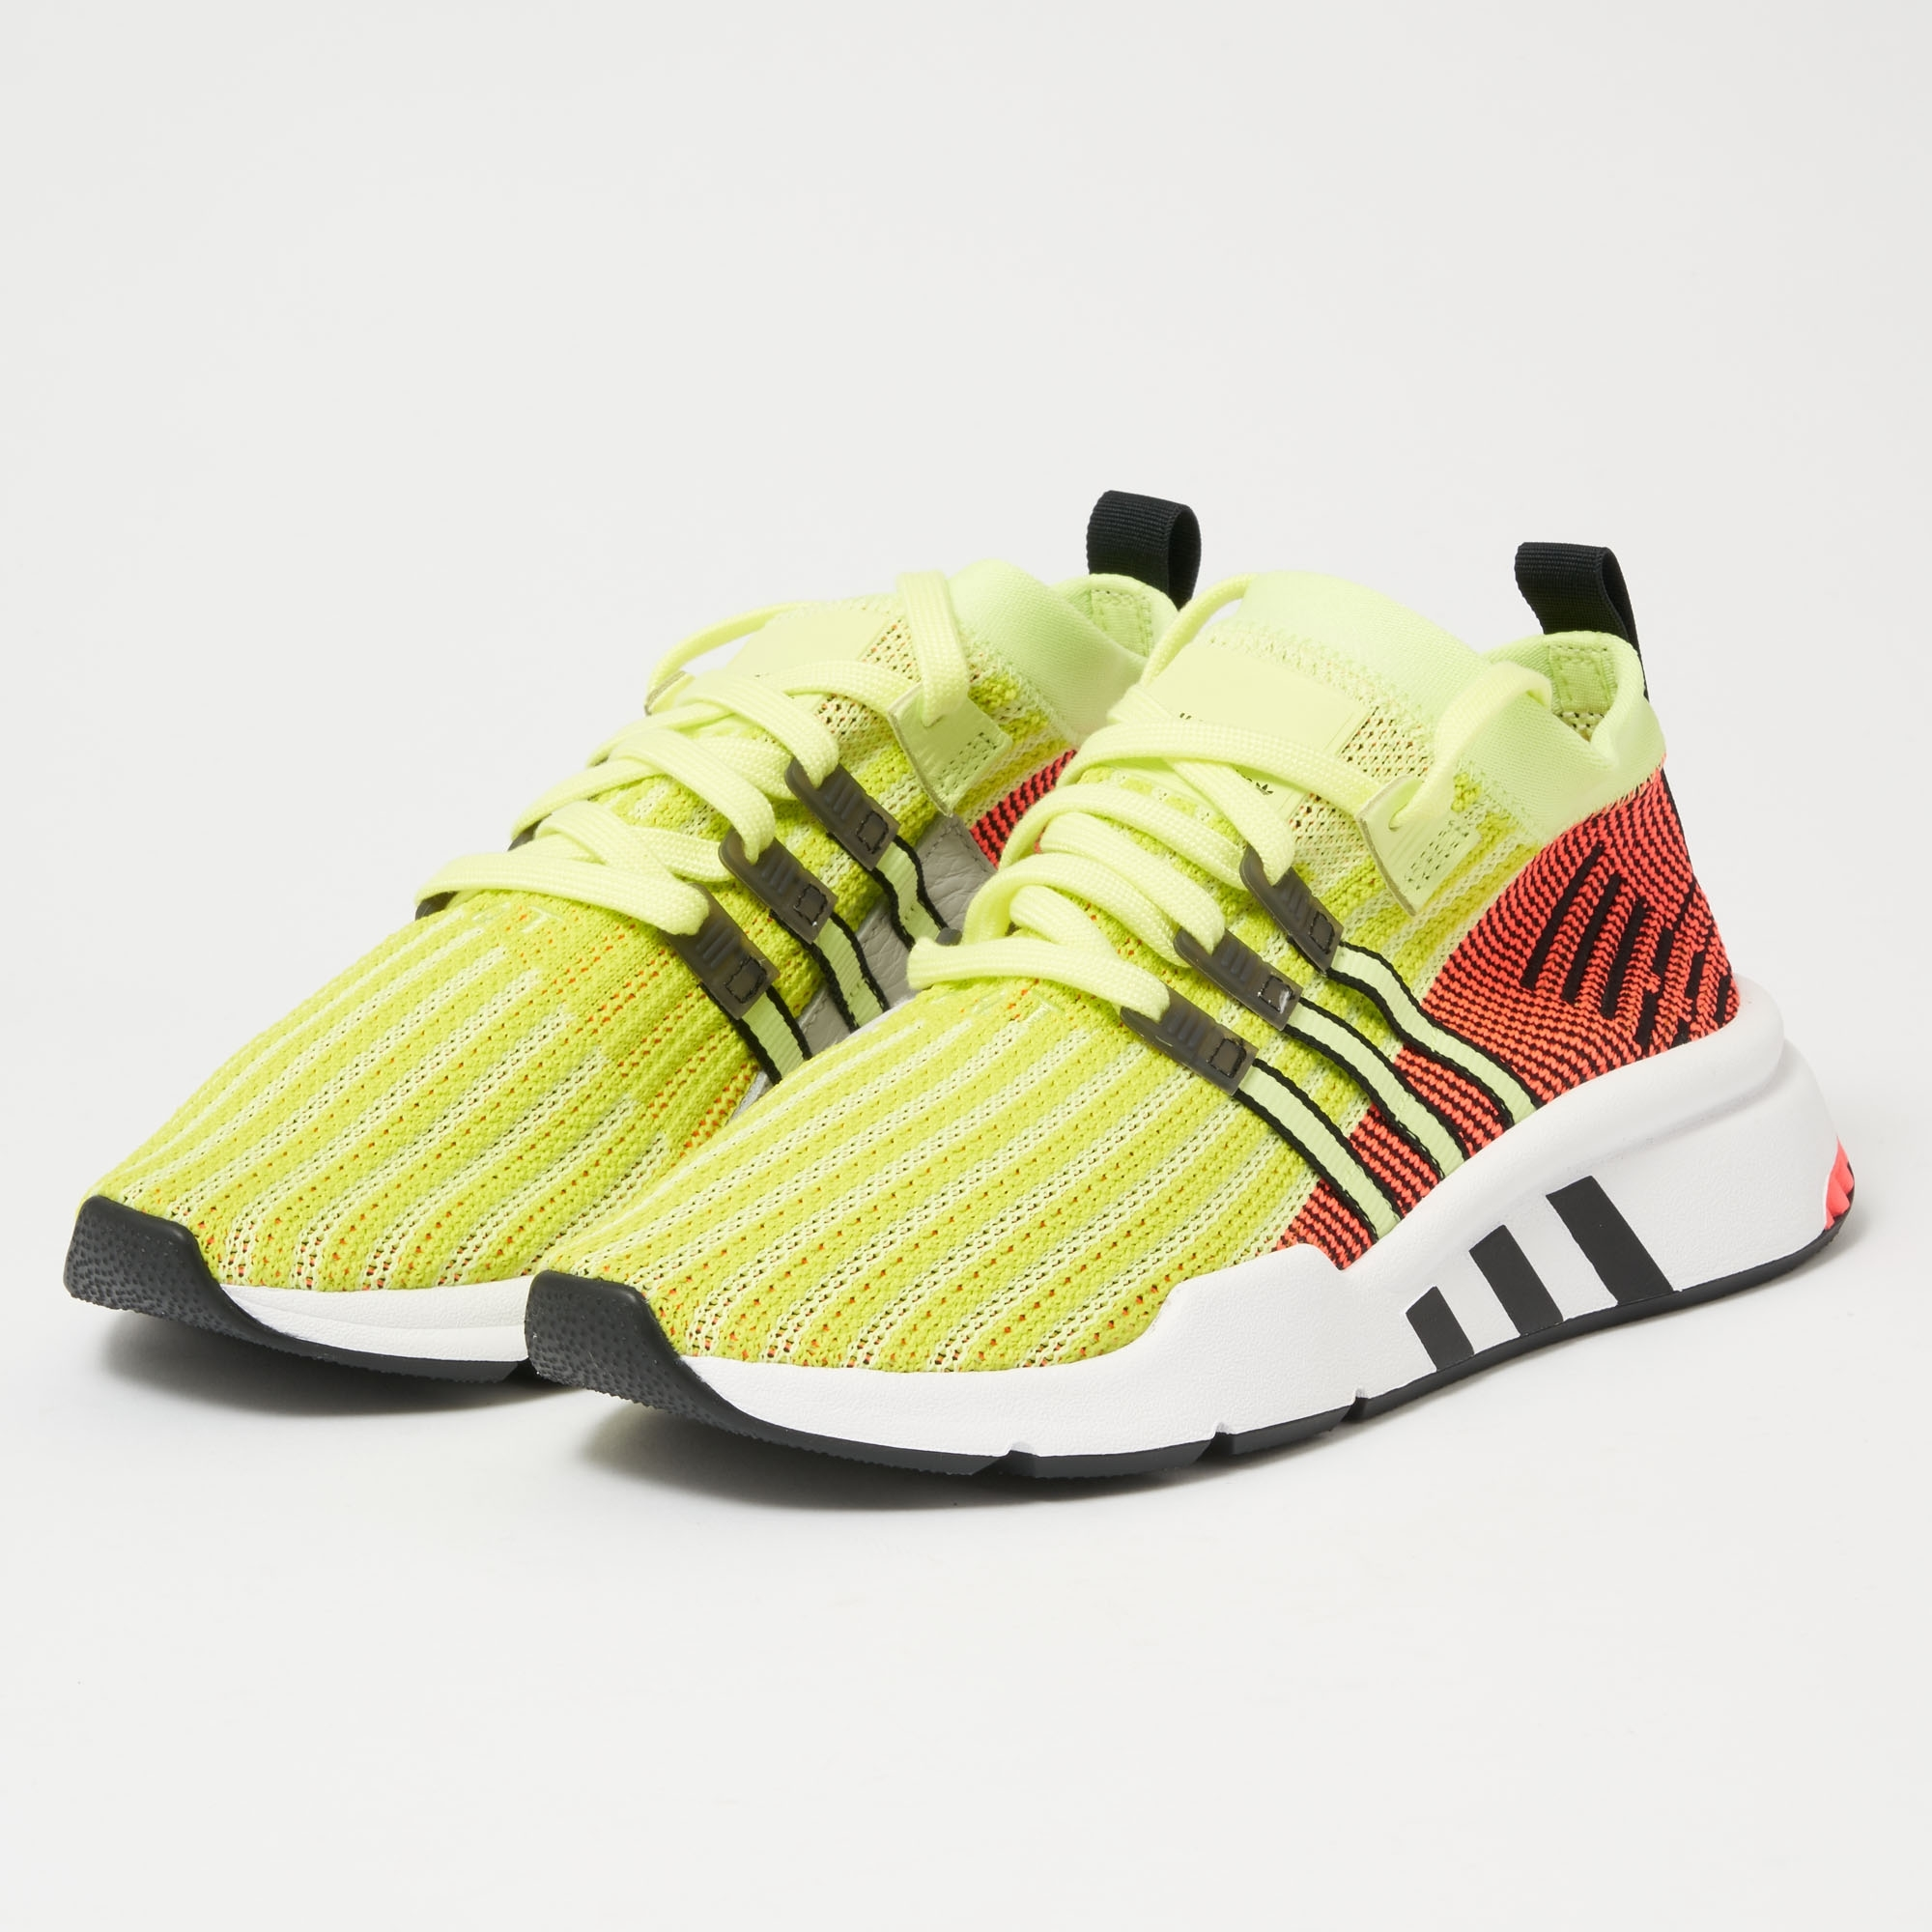 adidas Originals EQT Support MID ADV Primeknit Glow, Core Black & Turbo